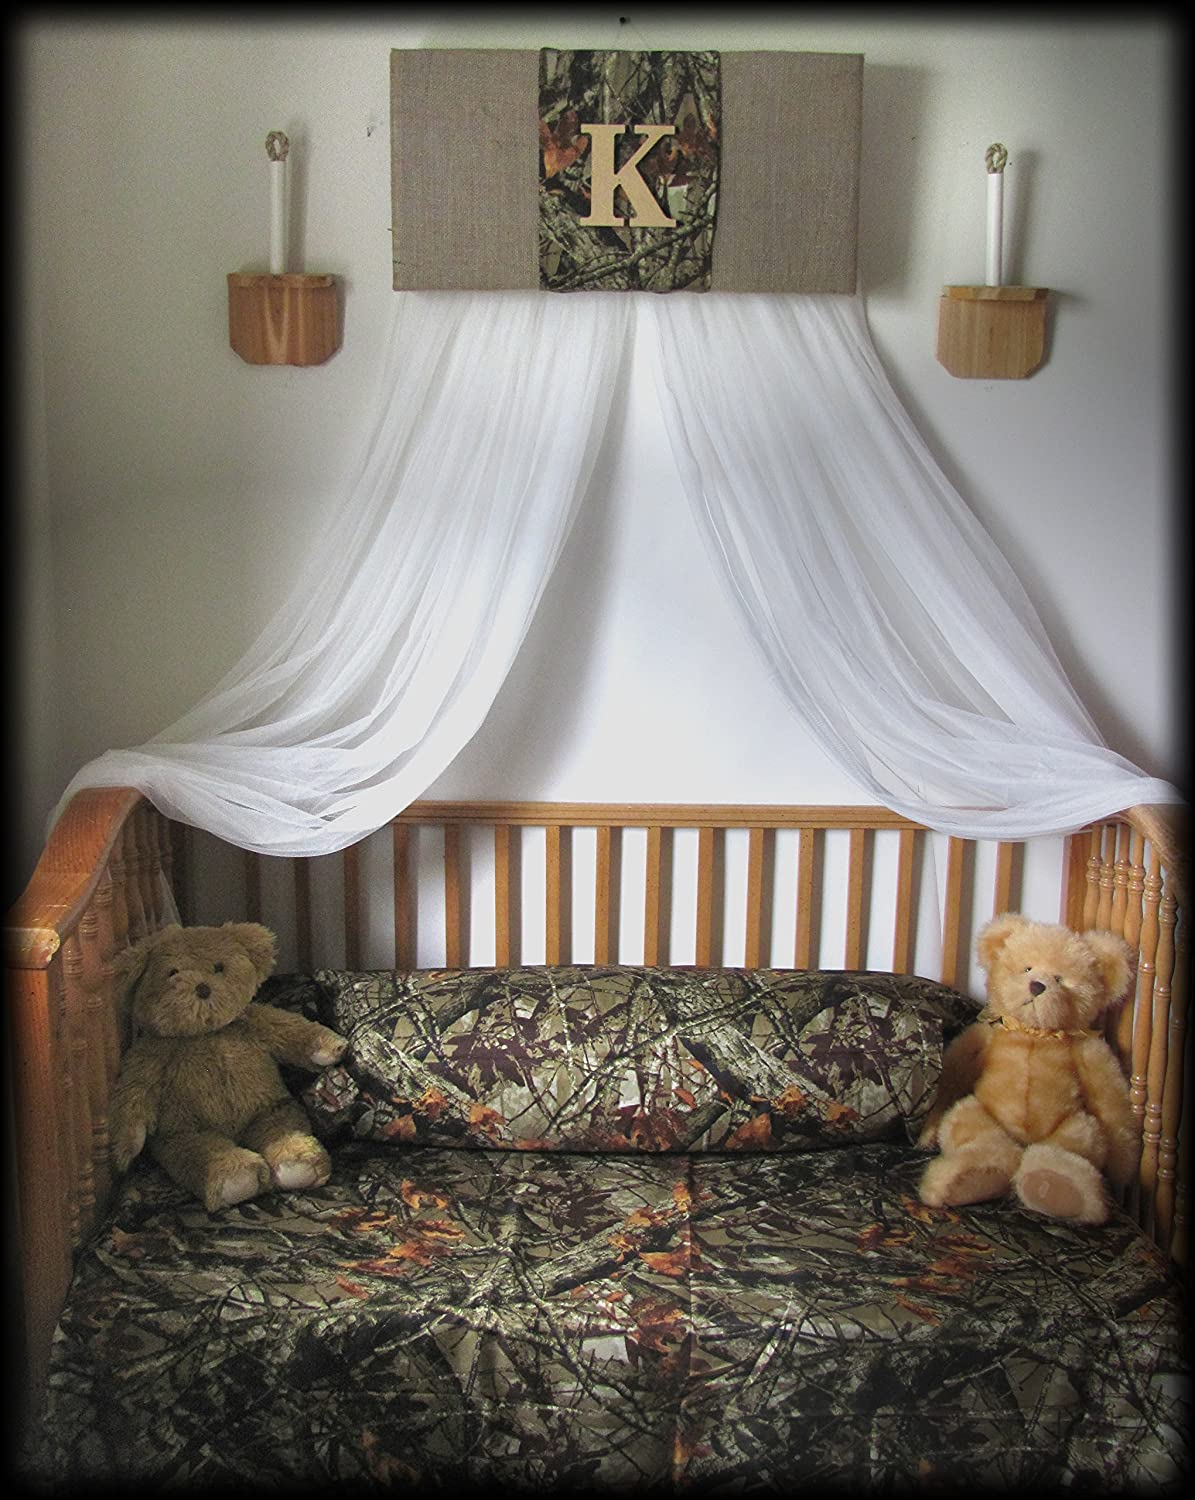 Amazon.com Crib Canopy boy nursery Bedroom Realtree Camouflage Mossy Oak cornice BuRLAP Camo Baby HunT WHITE sheer curtains Bed So Zoey Boutique SaLe ... & Amazon.com: Crib Canopy boy nursery Bedroom Realtree Camouflage ...